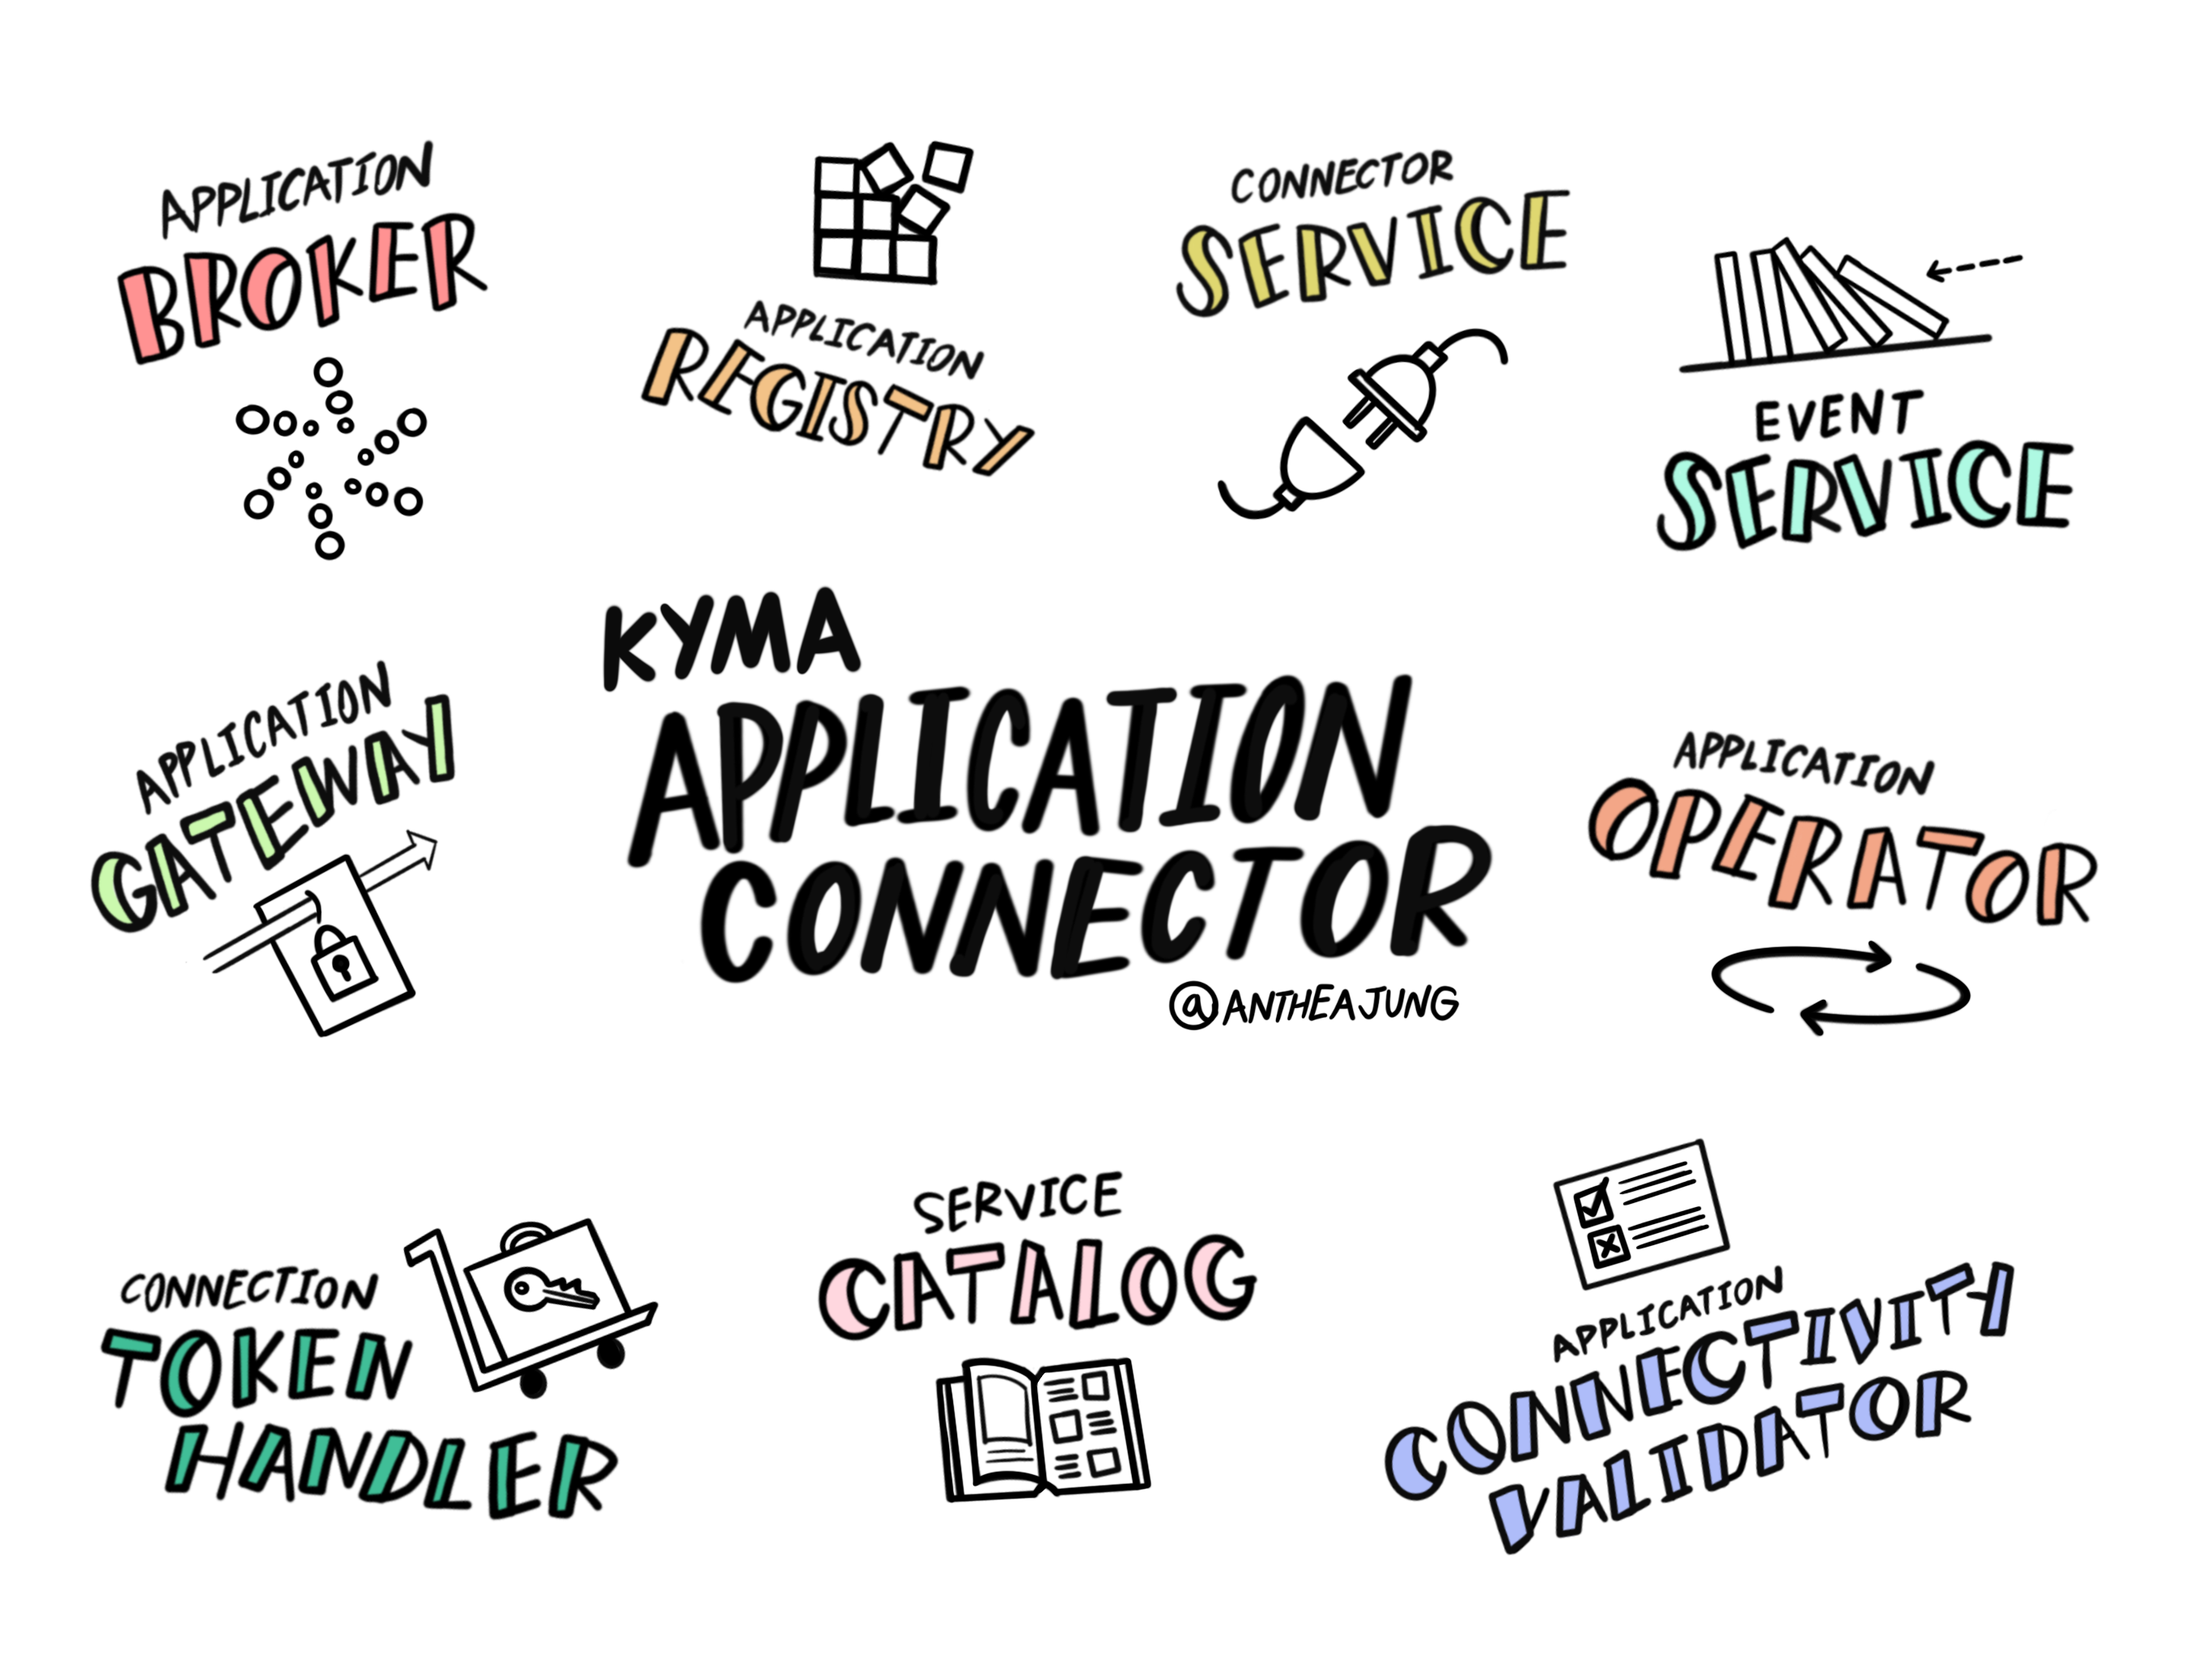 Kyma%20Application%20Connector%20Components